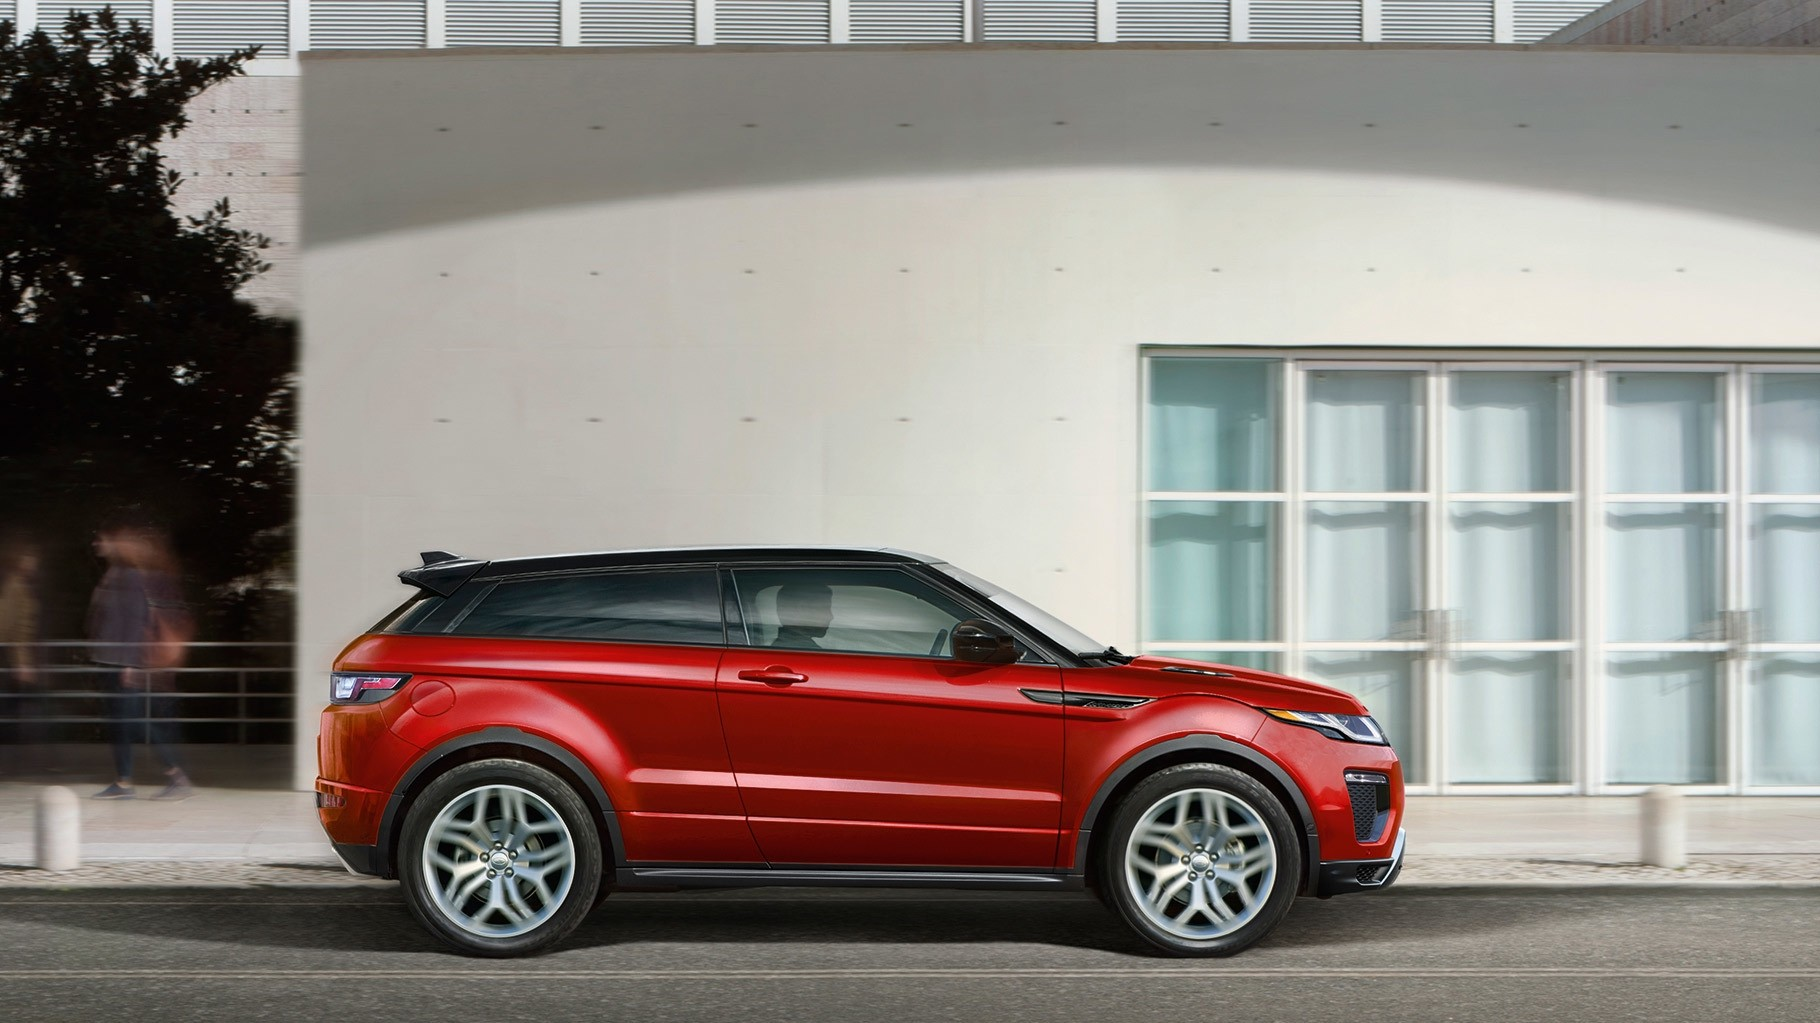 2017 Land Rover Range Rover Evoque Exterior side profile